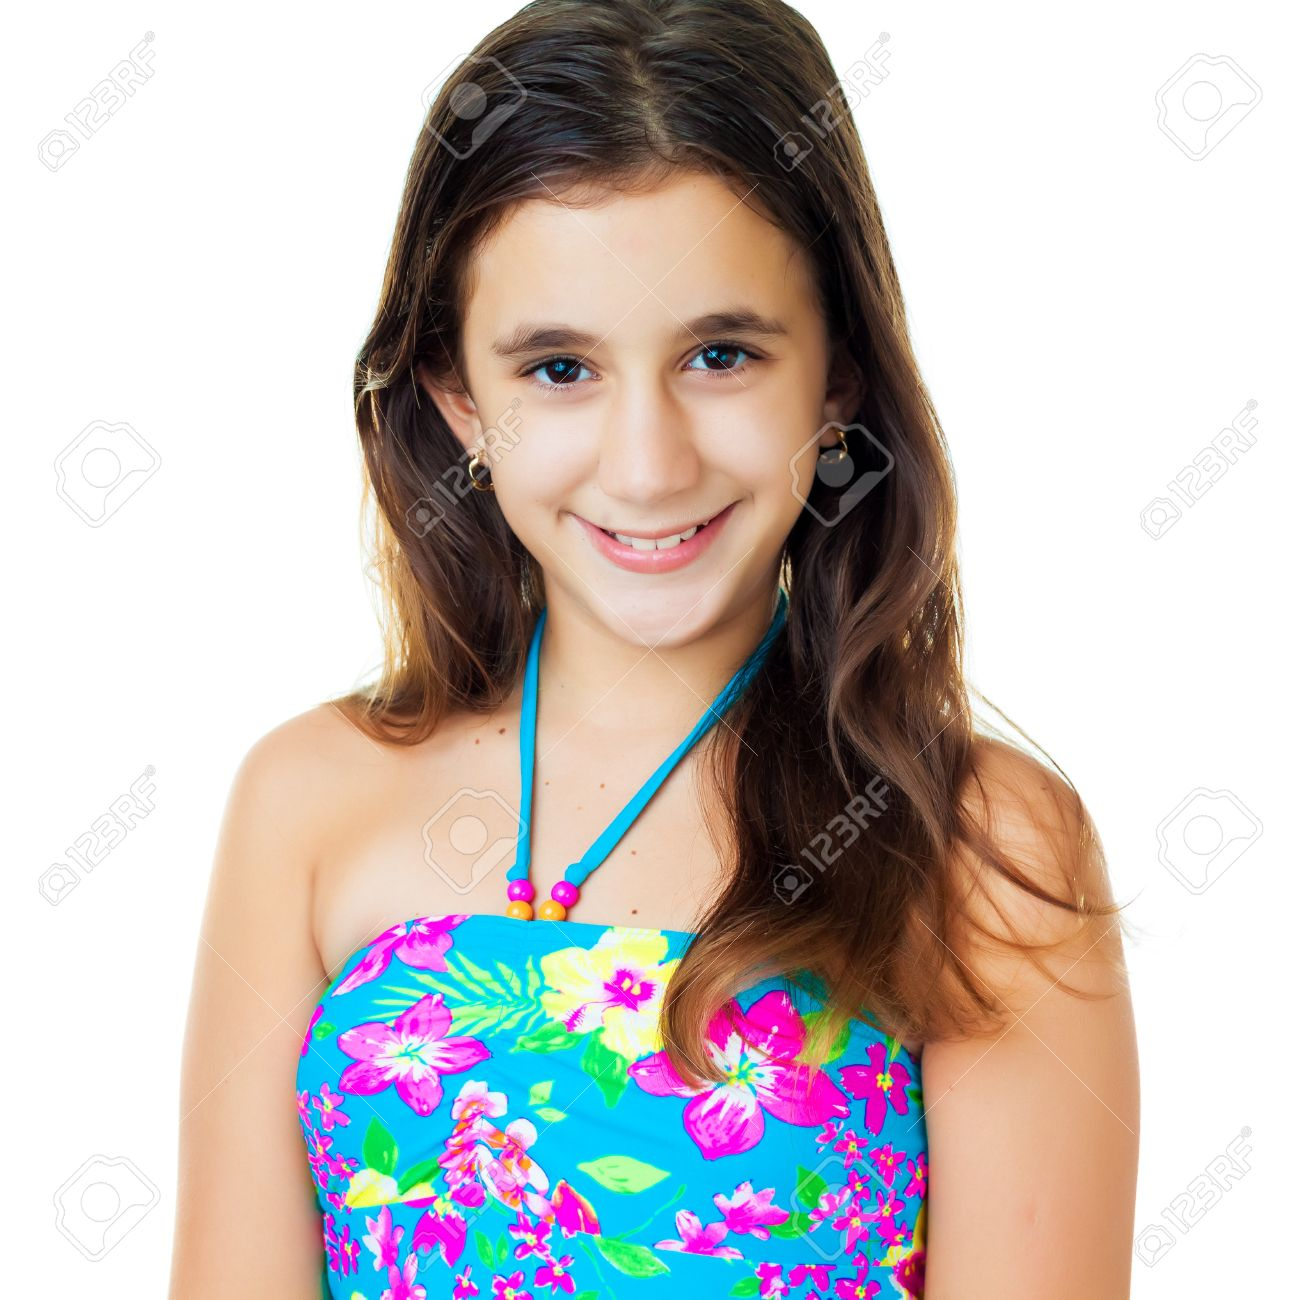 Portrait of a beautiful hispanic teen wearing a swimsuit isolated on white Stock Photo - 15367805